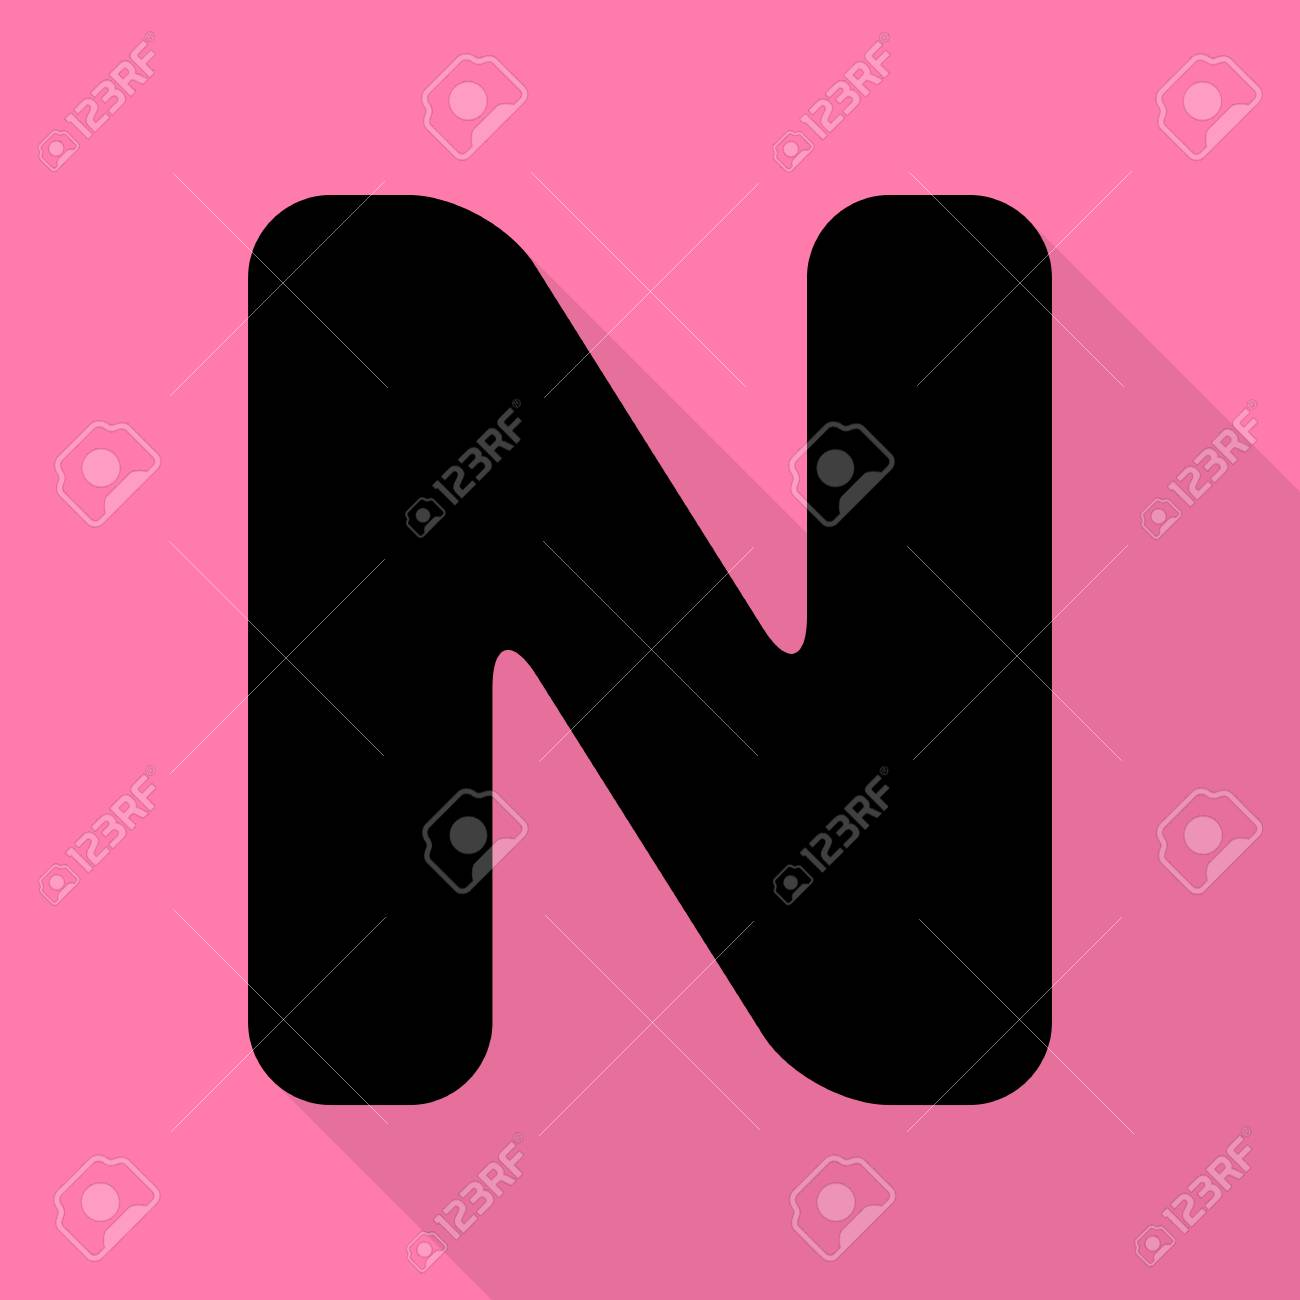 letter n sign design template element black icon with flat style shadow path on pink